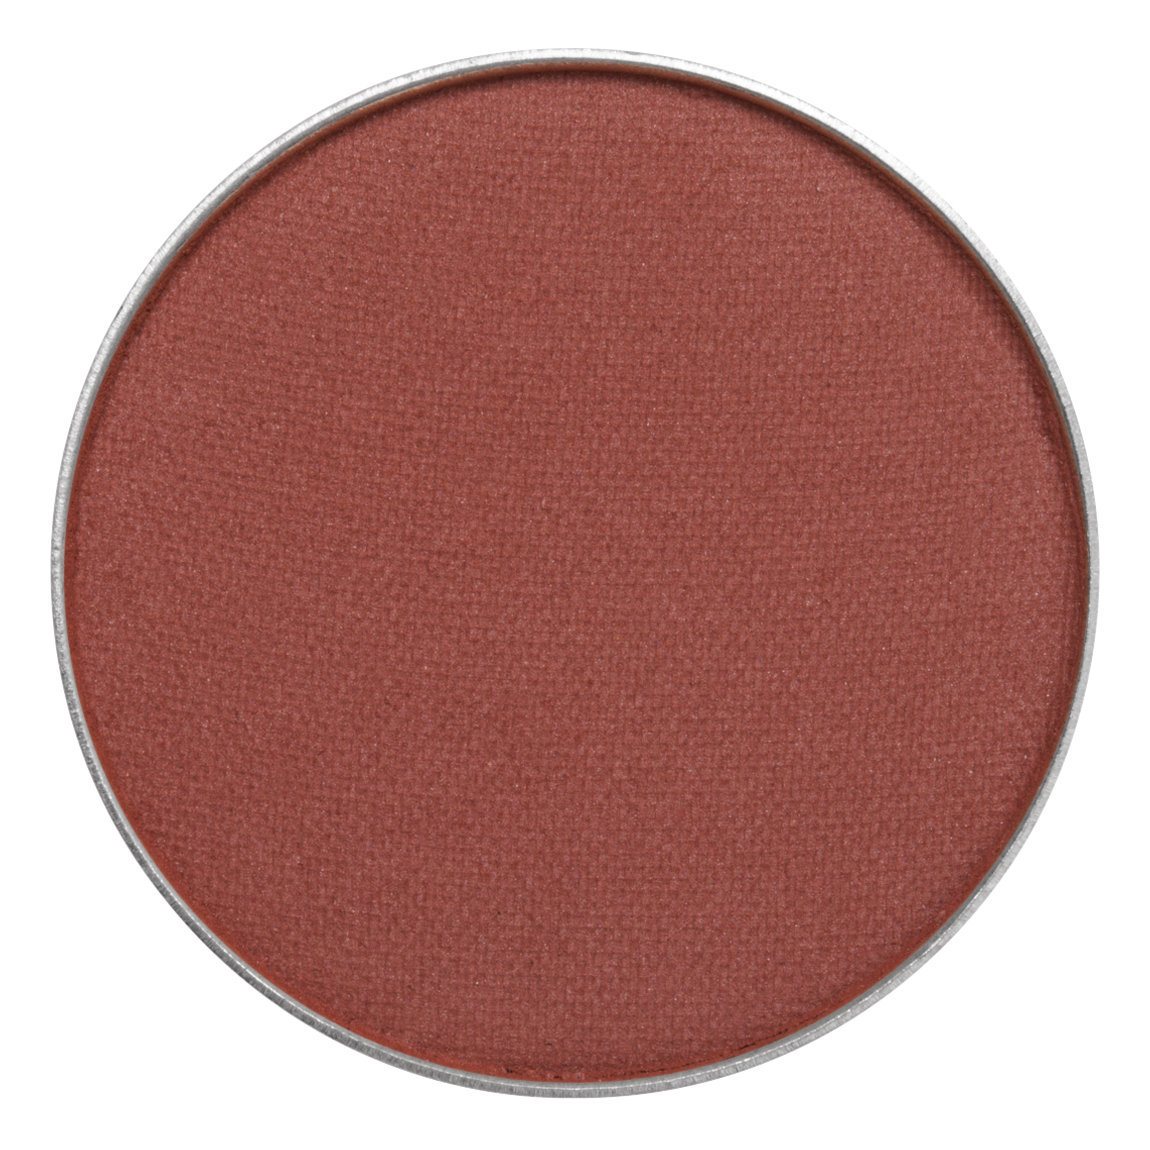 Anastasia Beverly Hills Eye Shadow Single Red Earth product swatch.